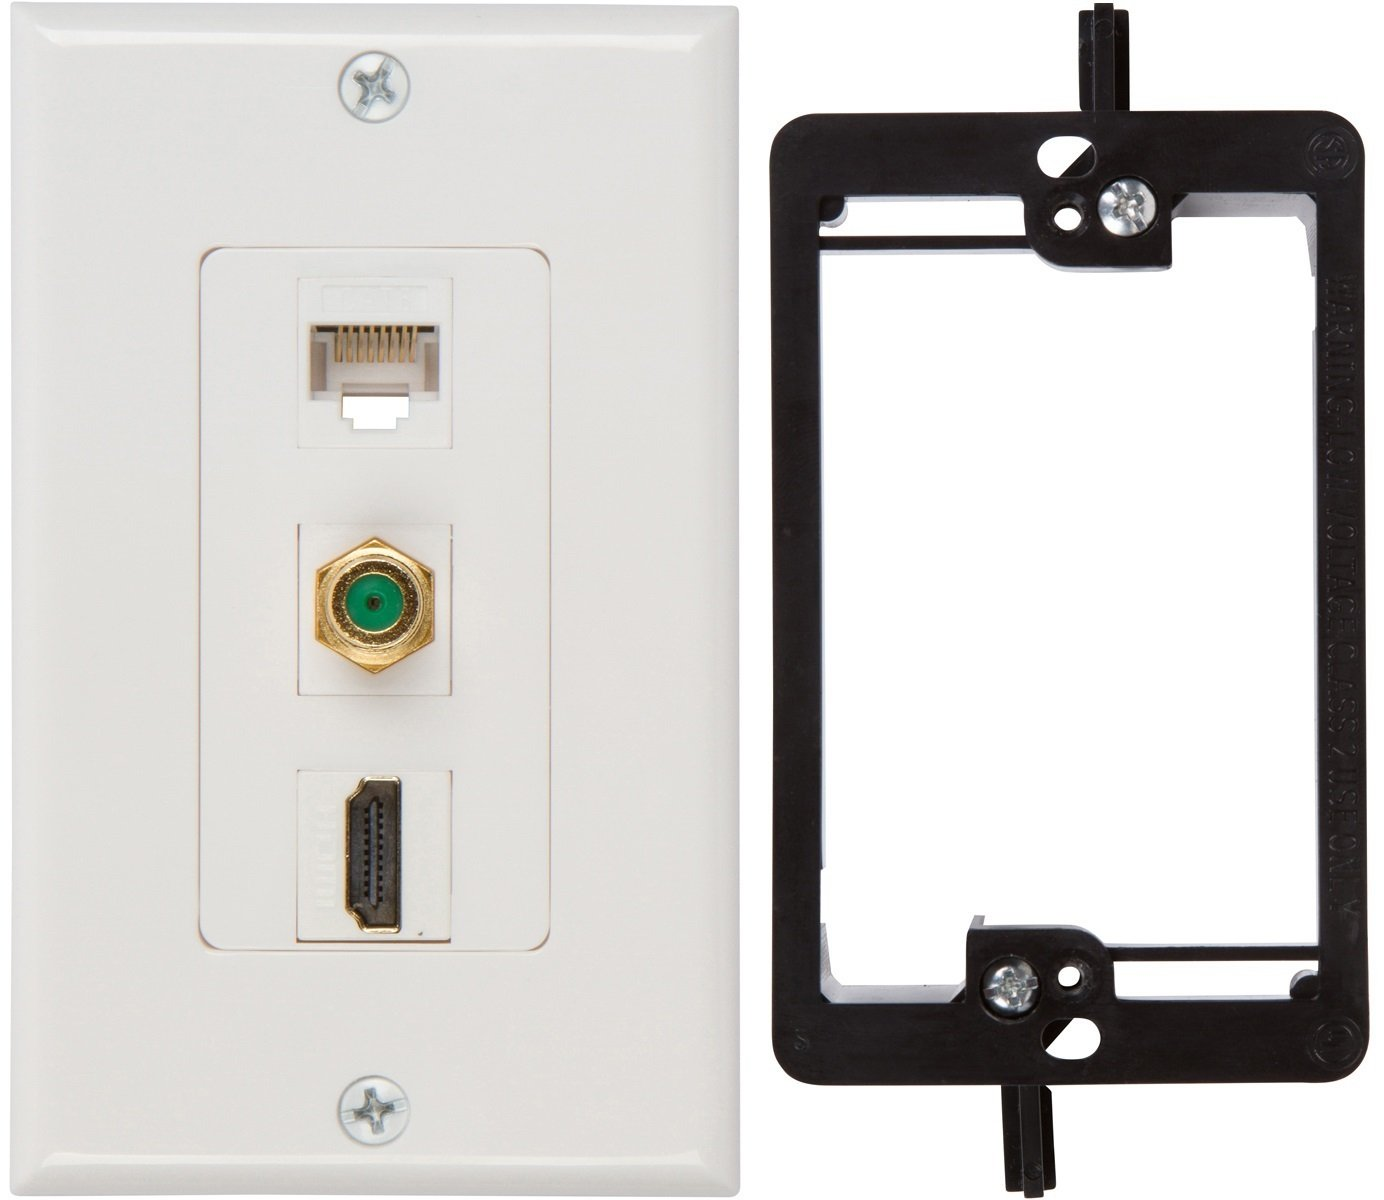 Cheap Hdmi Coax Wall Plate Find Deals On Line Wiring Plates Get Quotations Buyers Point 3ghz Ethernet With Single Gang Low Voltage Mounting Bracket Device